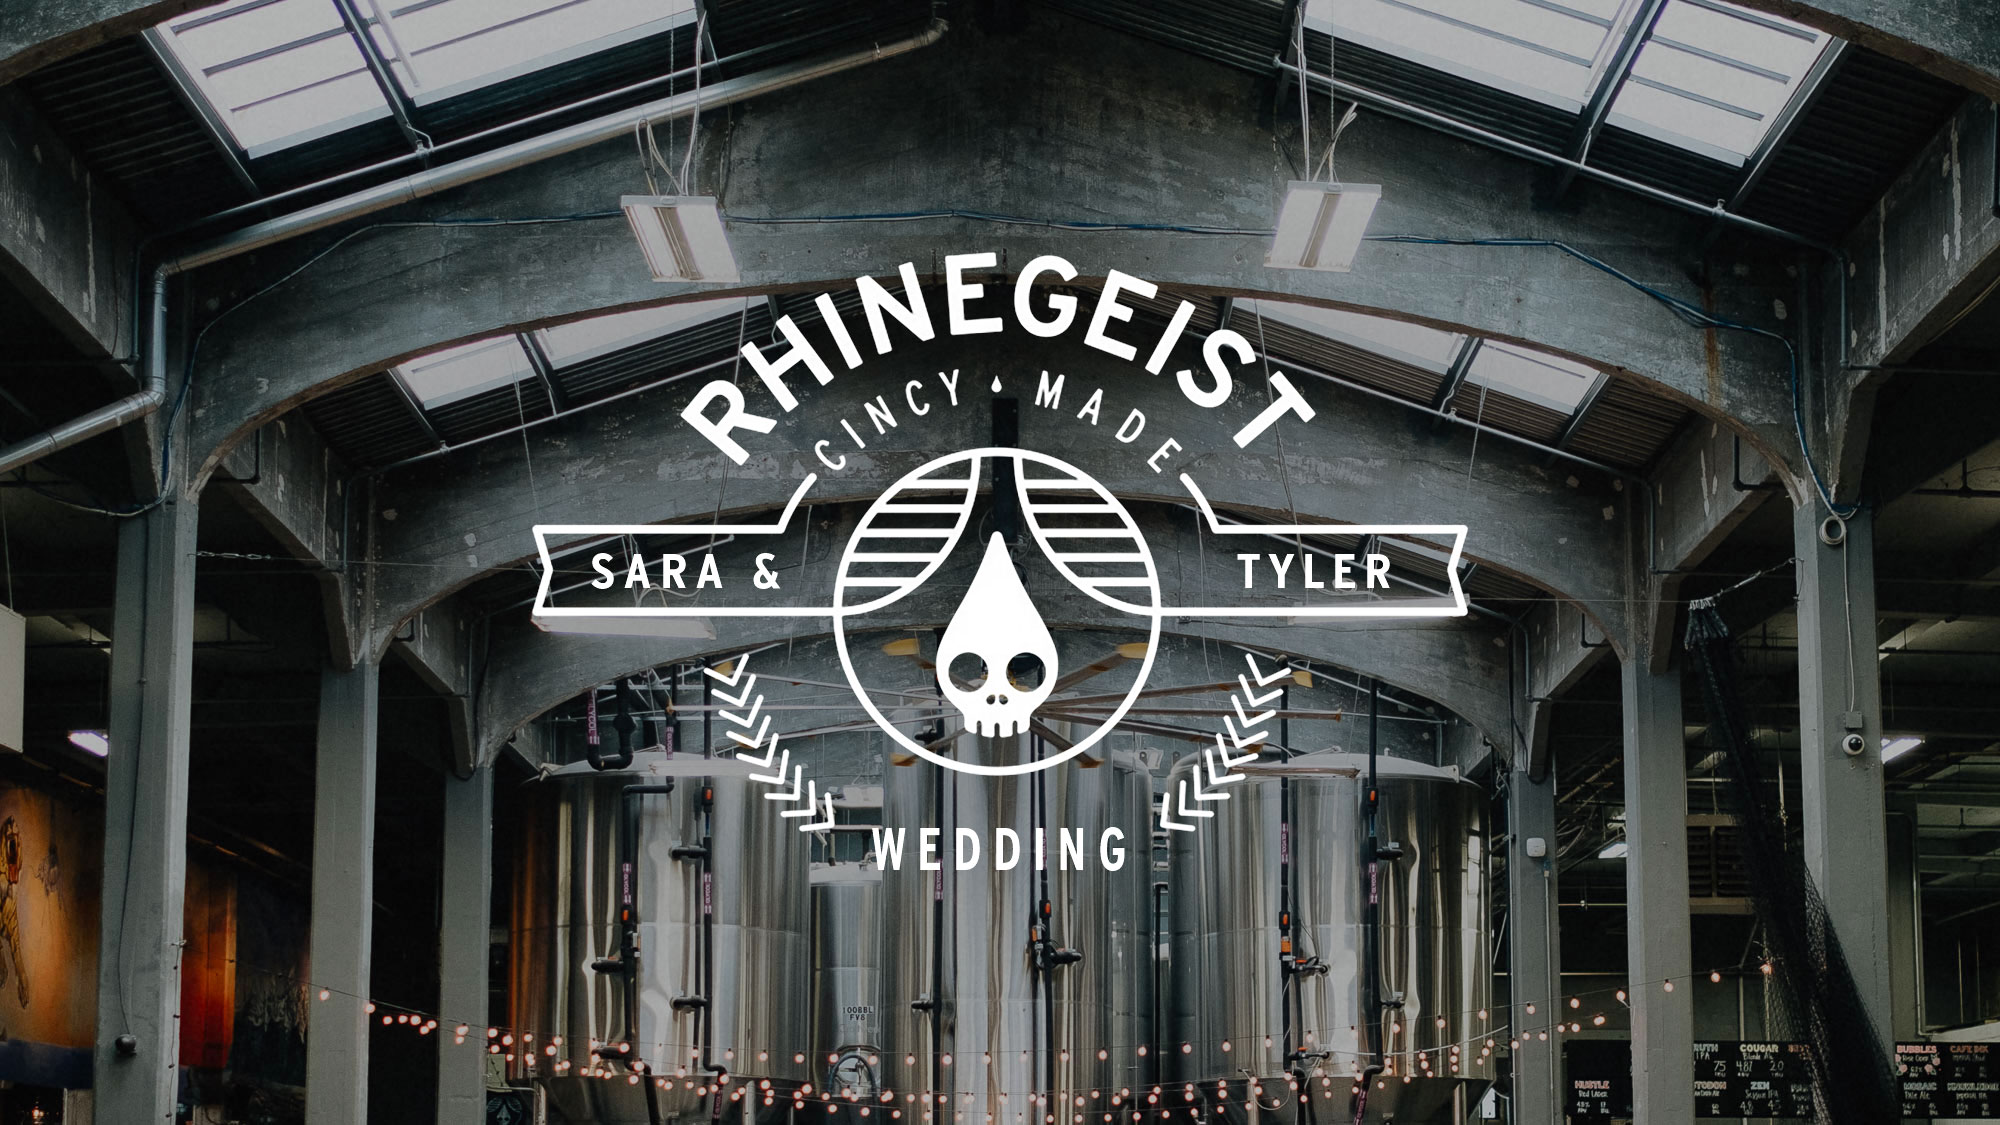 Photos of Sara and Tyler's wedding at the Rhinegiest Brewery in the Over the Rhine neighborhood of Cincinnati Ohio